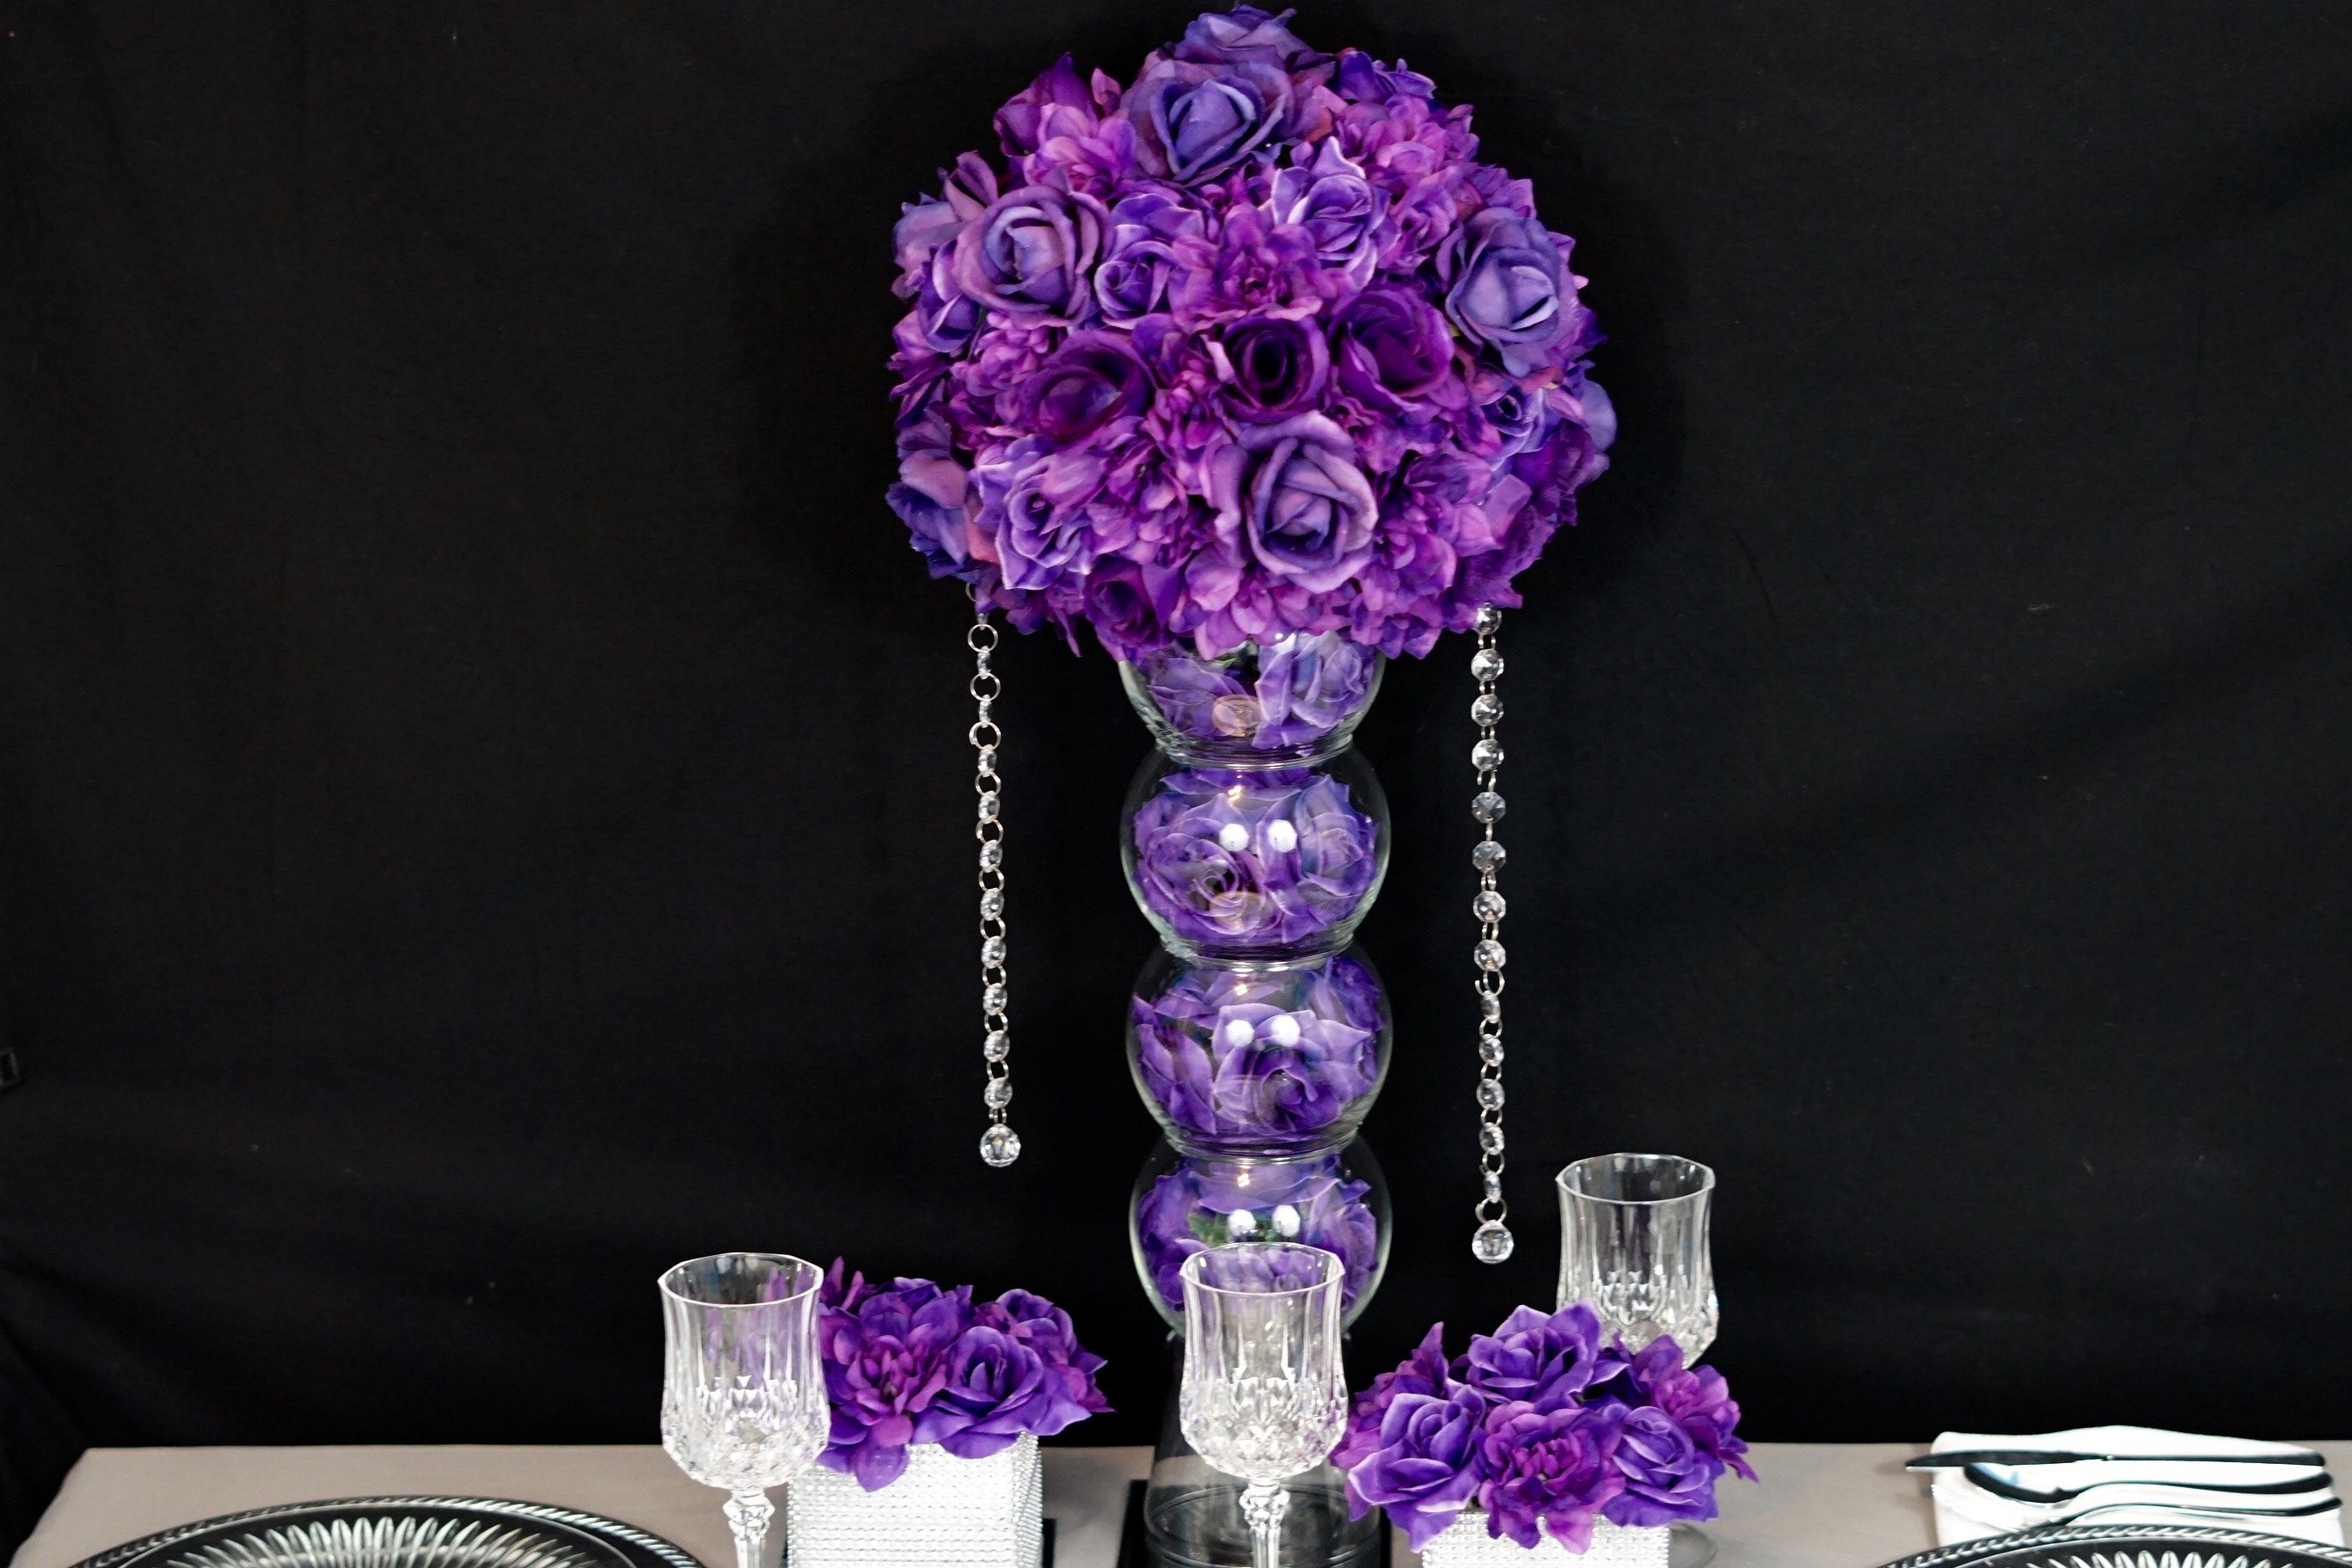 Diy purple passion wedding centerpiece in 3 easy steps i absolutely love how this purple passion wedding centerpiece thank you shunika for letting us be apart of your special day junglespirit Image collections